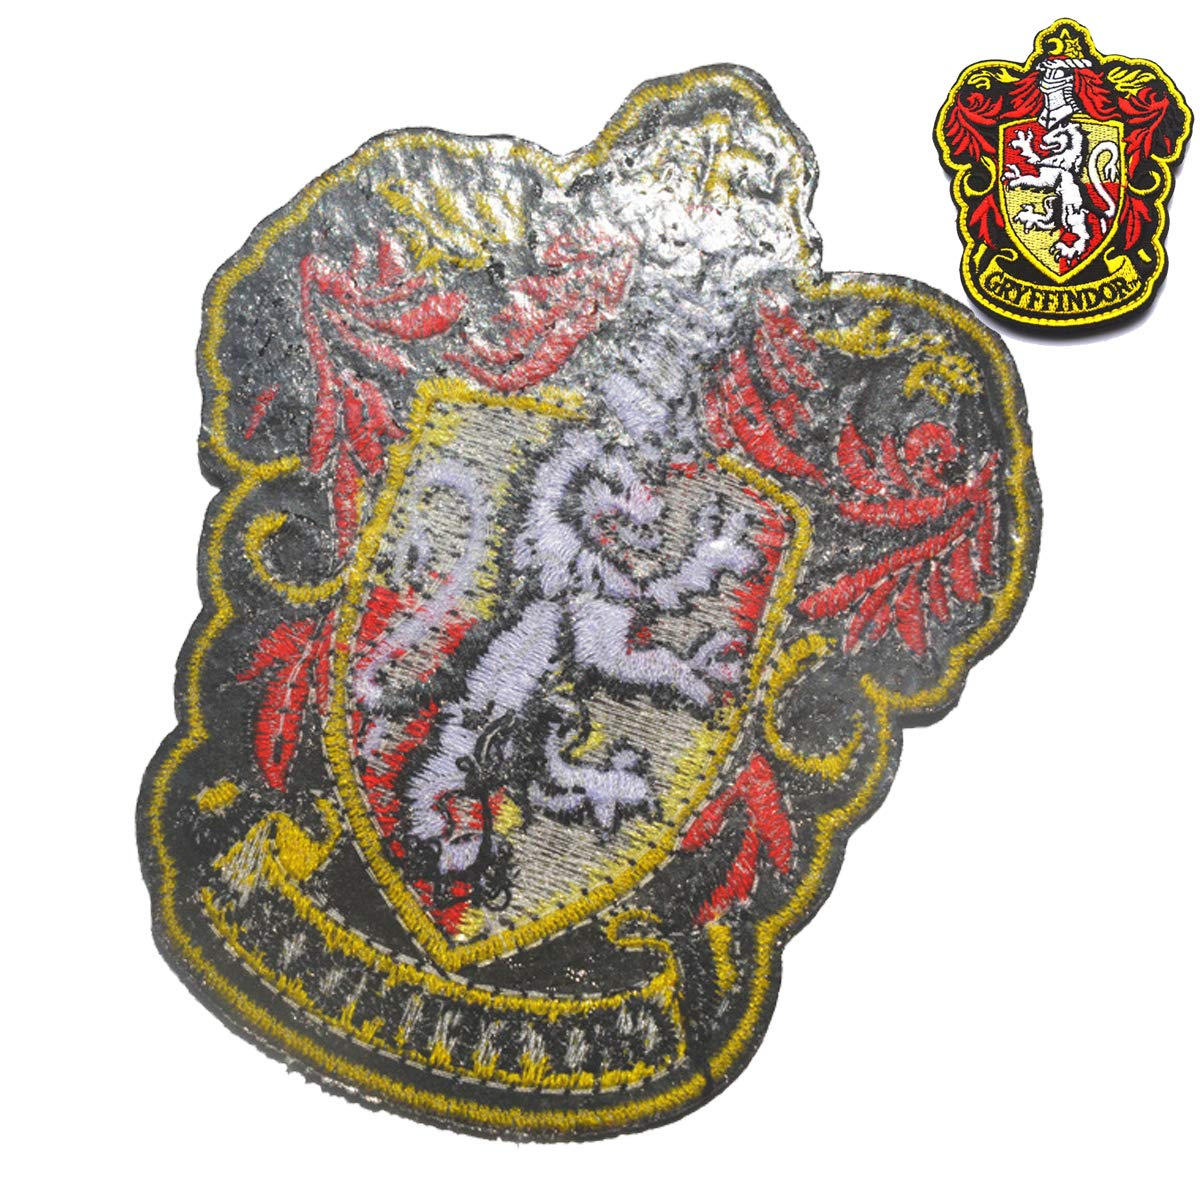 Harry Potter House of Hufflepuff House Hogwarts s Crest Patch Full Color Sew/Iron-On Patches Applique For Coat Jacket Gear Cap Hat Backpack 3.94